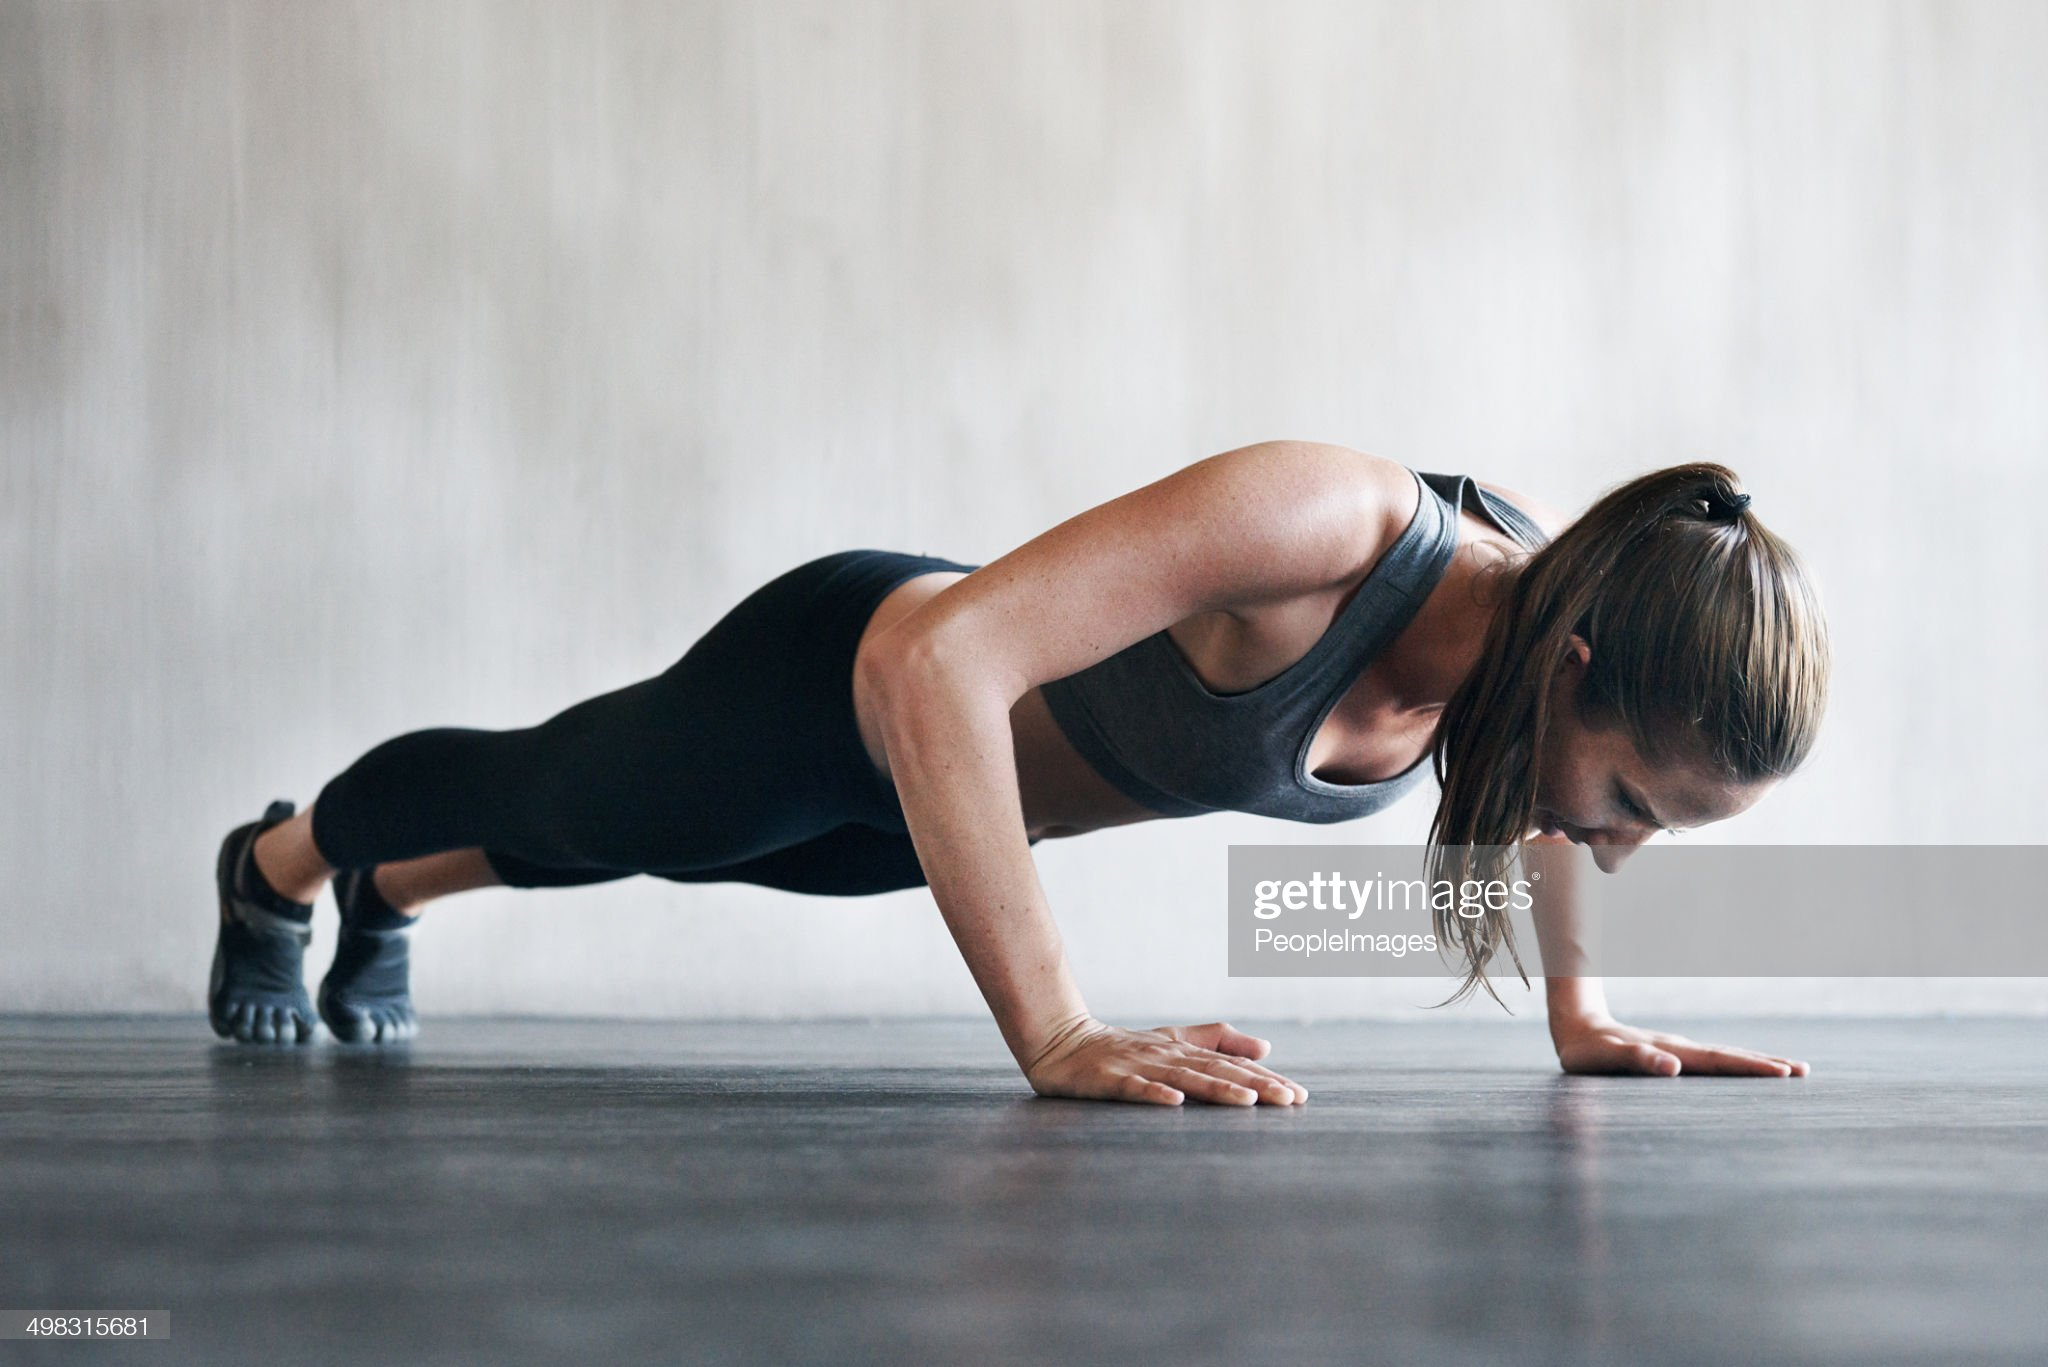 Feeling good, looking great from working out regularly : Stock Photo